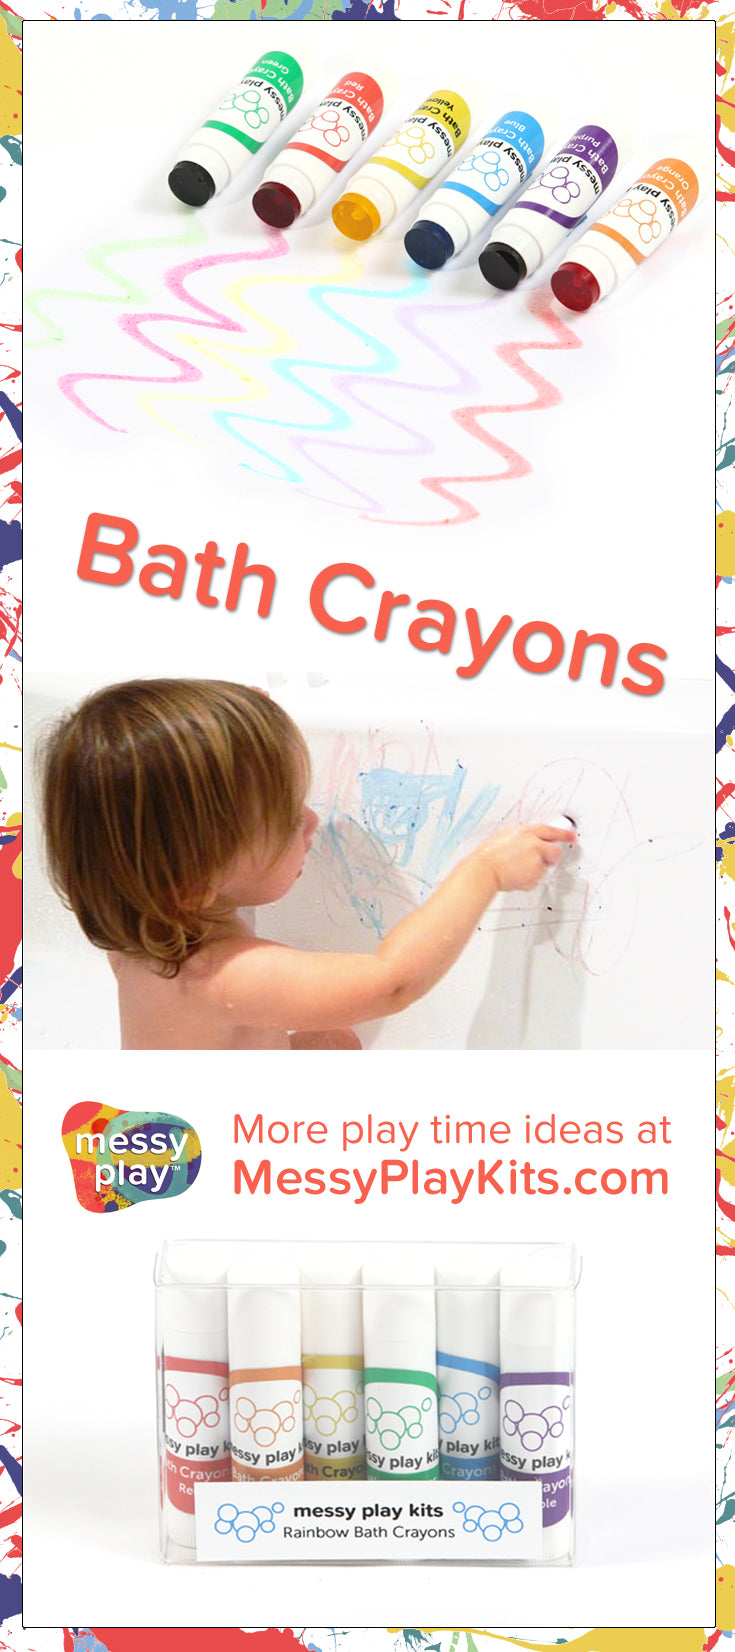 Bath Crayons from Messy Play Kits